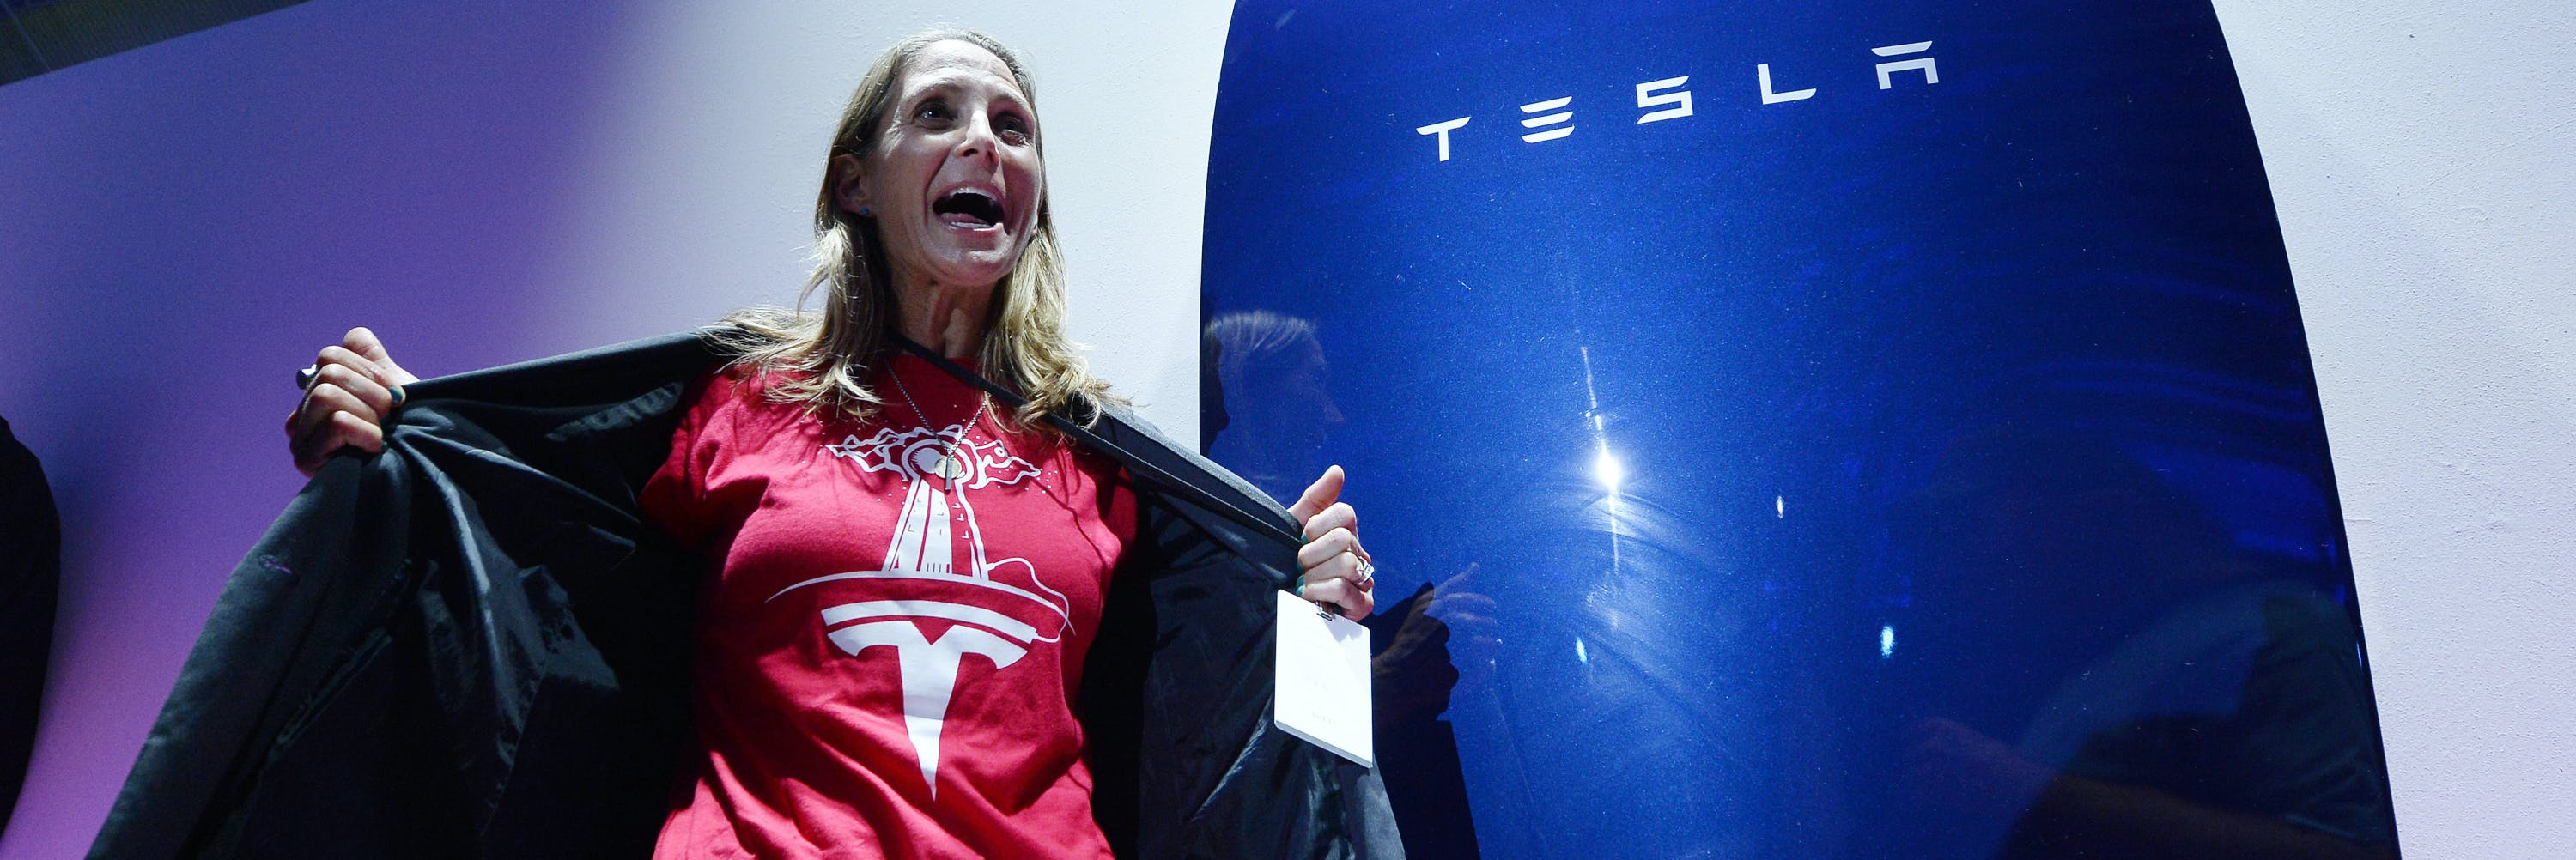 LOS ANGELES, CA - APRIL 30:  Guests pose with the Powerwall unit after Elon Musk, CEO of Tesla unveiled suit of batteries for homes, businesses, and utilities at Tesla Design Studio April 30, 2015 in Hawthorne, California. Musk unveiled the home battery named Powerwall with a selling price of $3500 for 10kWh and $3000 for 7kWh and very large utility pack called Powerpack. (Photo by Kevork Djansezian/Getty Images)